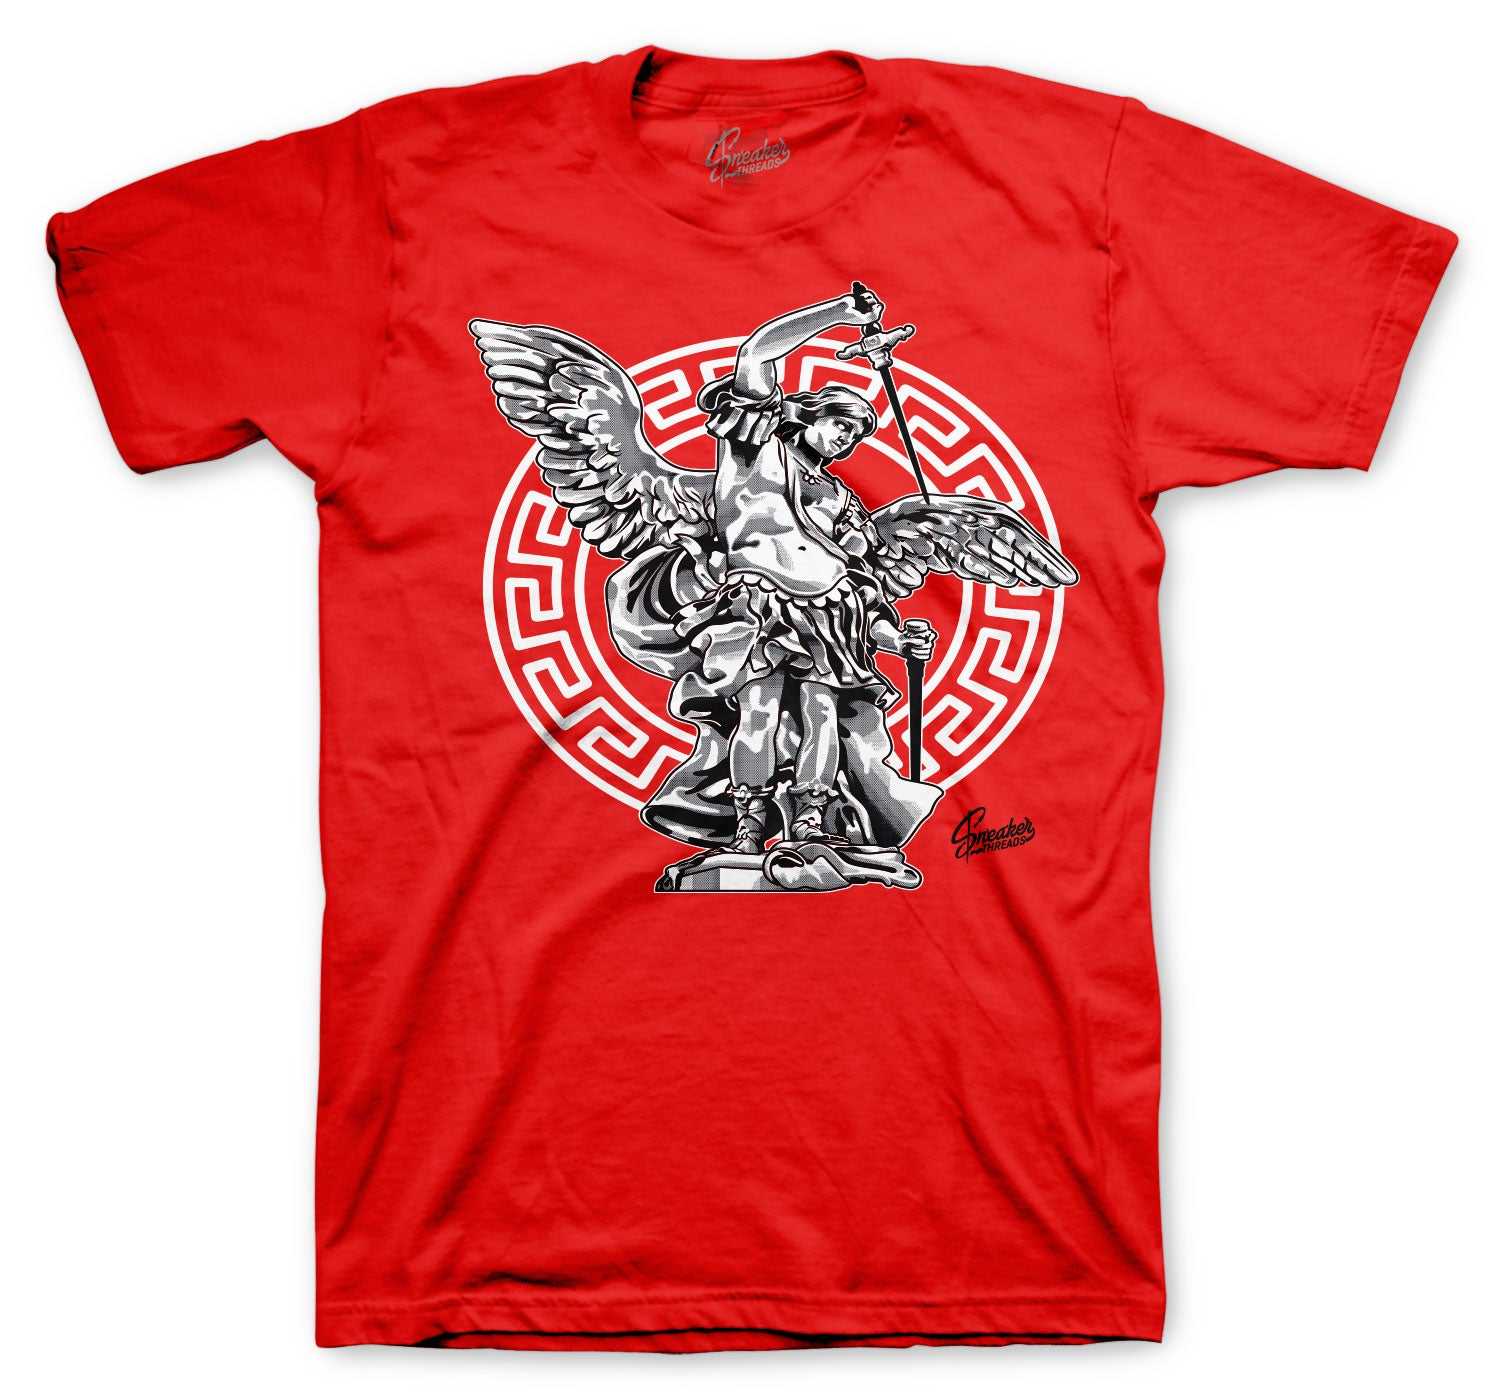 Jordan 1 AJKO Chicago ST Michael Shirts